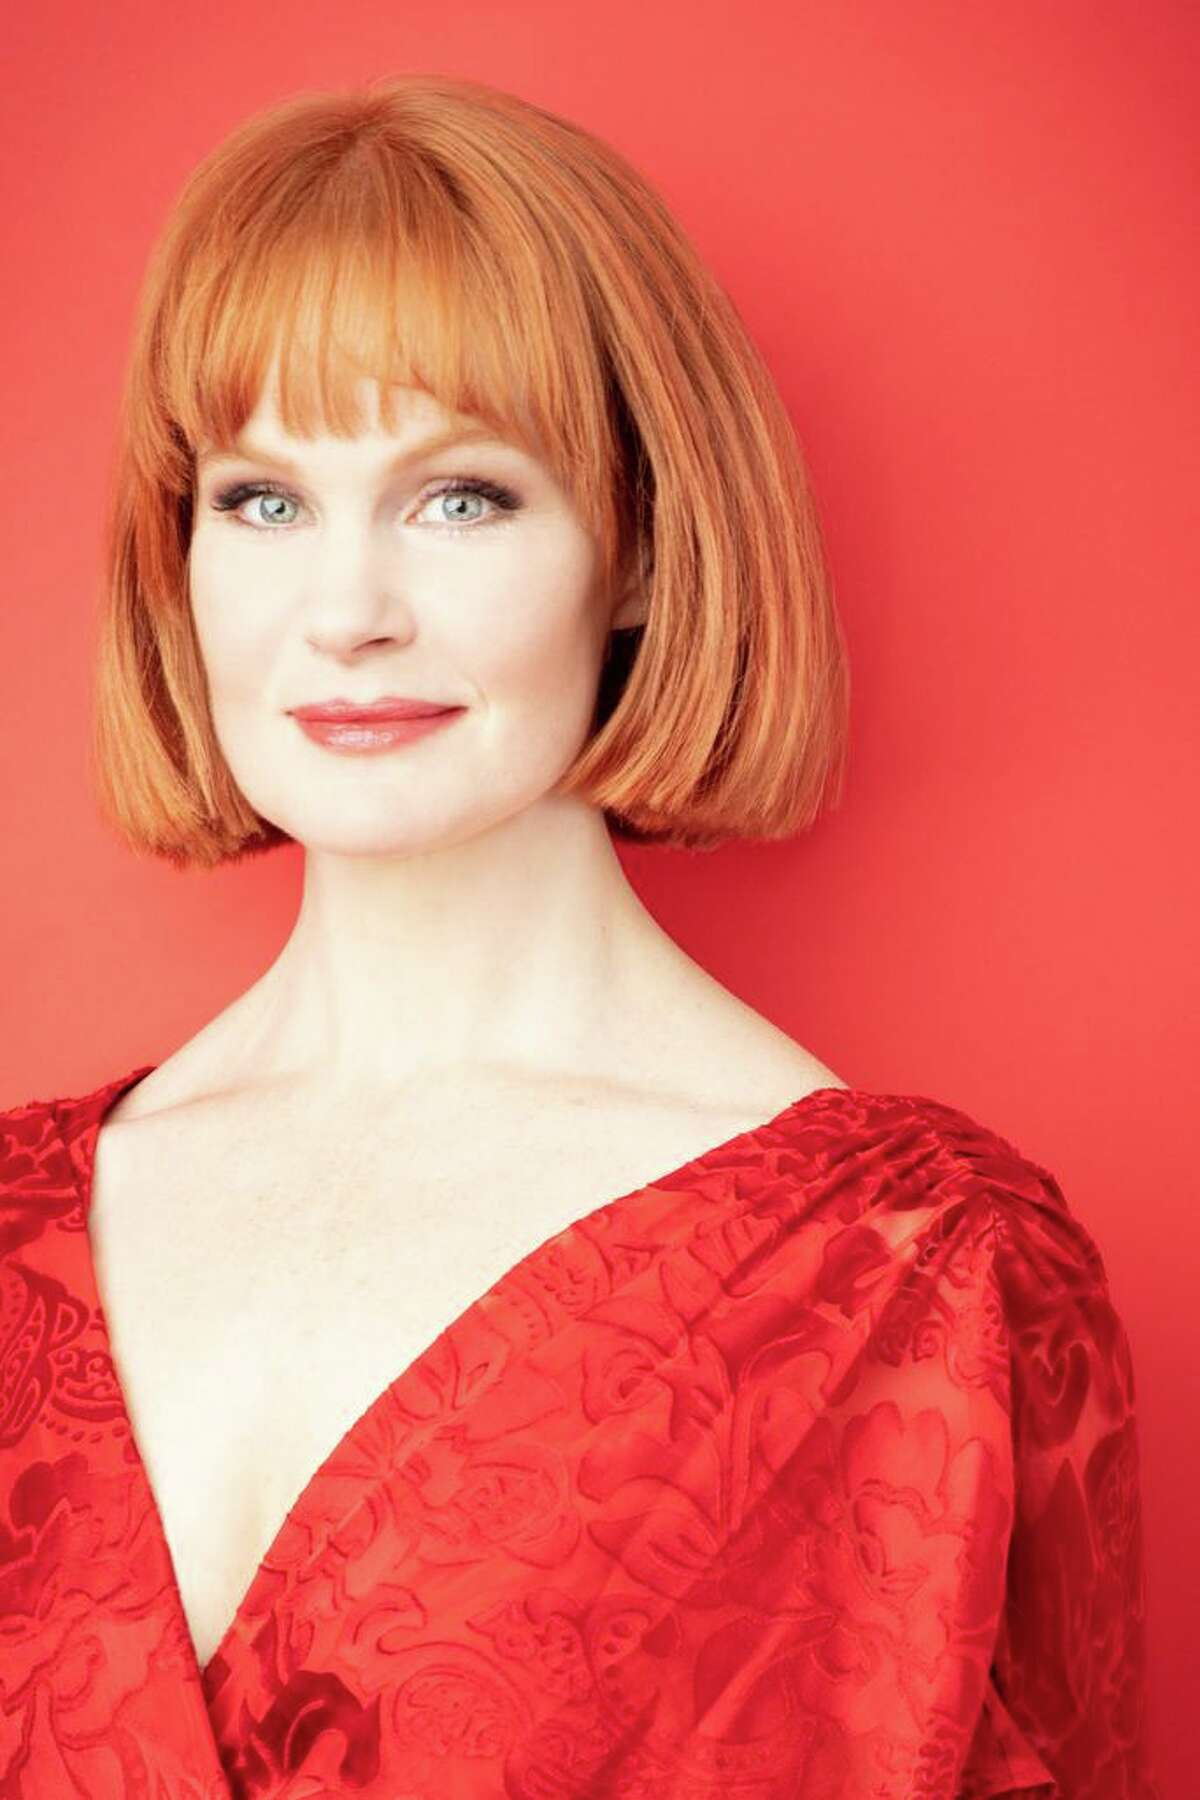 Kate Baldwin will perform at ACT's Broadway Unplugged concert on July 20.